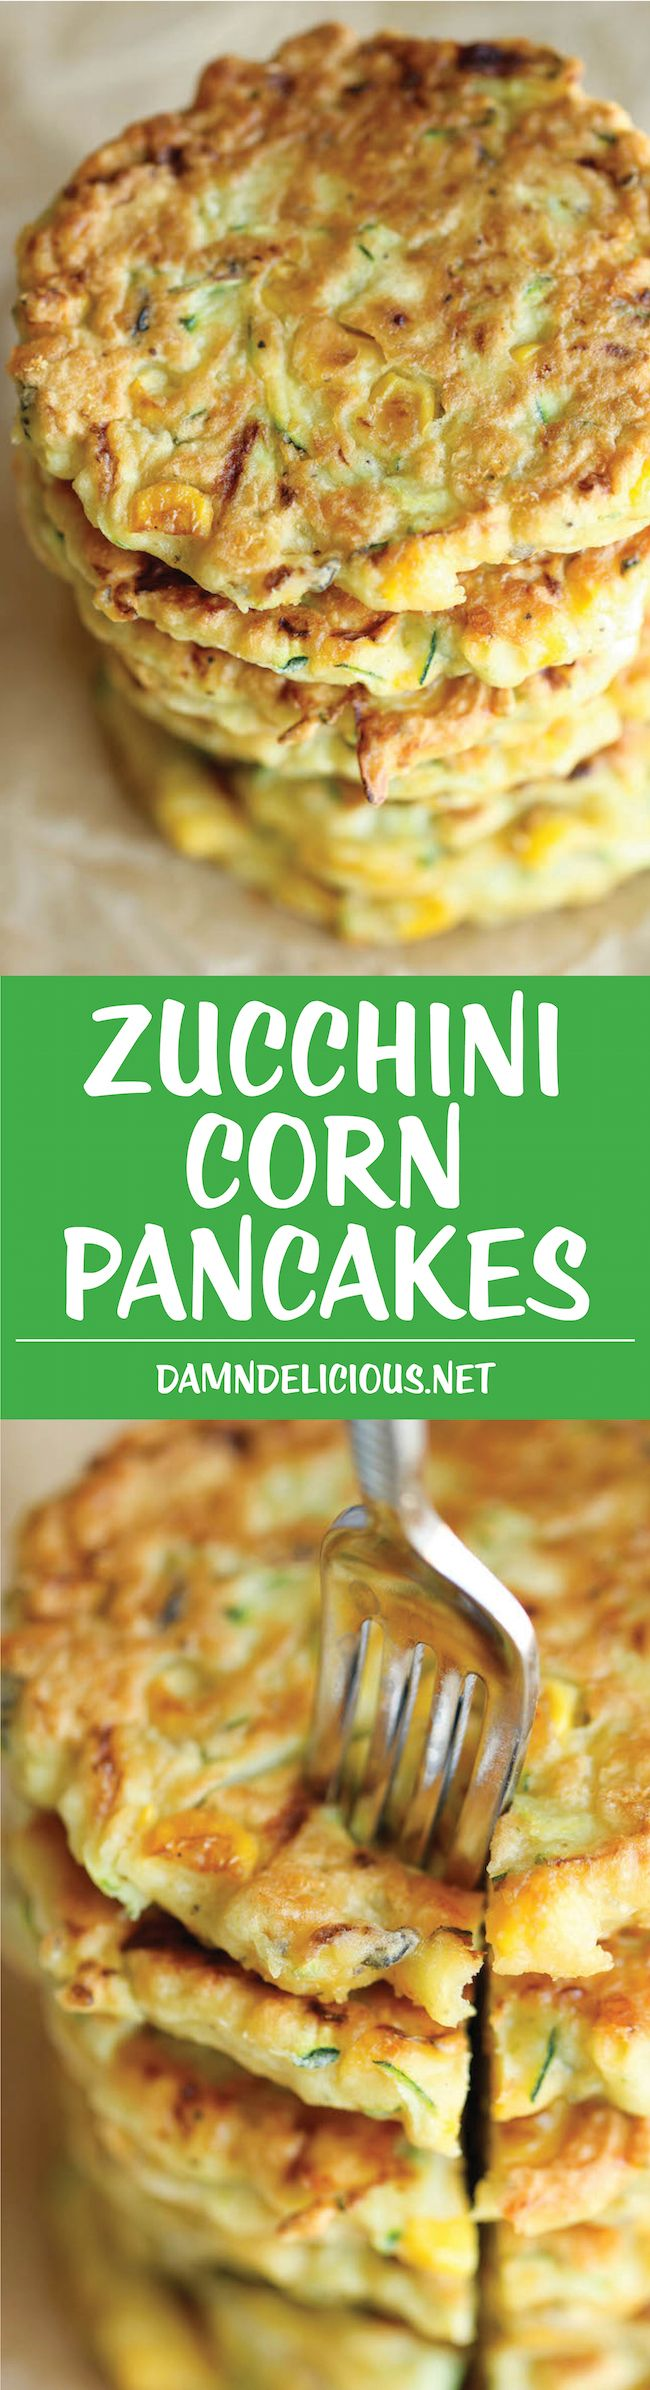 280 best my favorite continental food images on pinterest cooker zucchini corn pancakes damn delicious forumfinder Choice Image